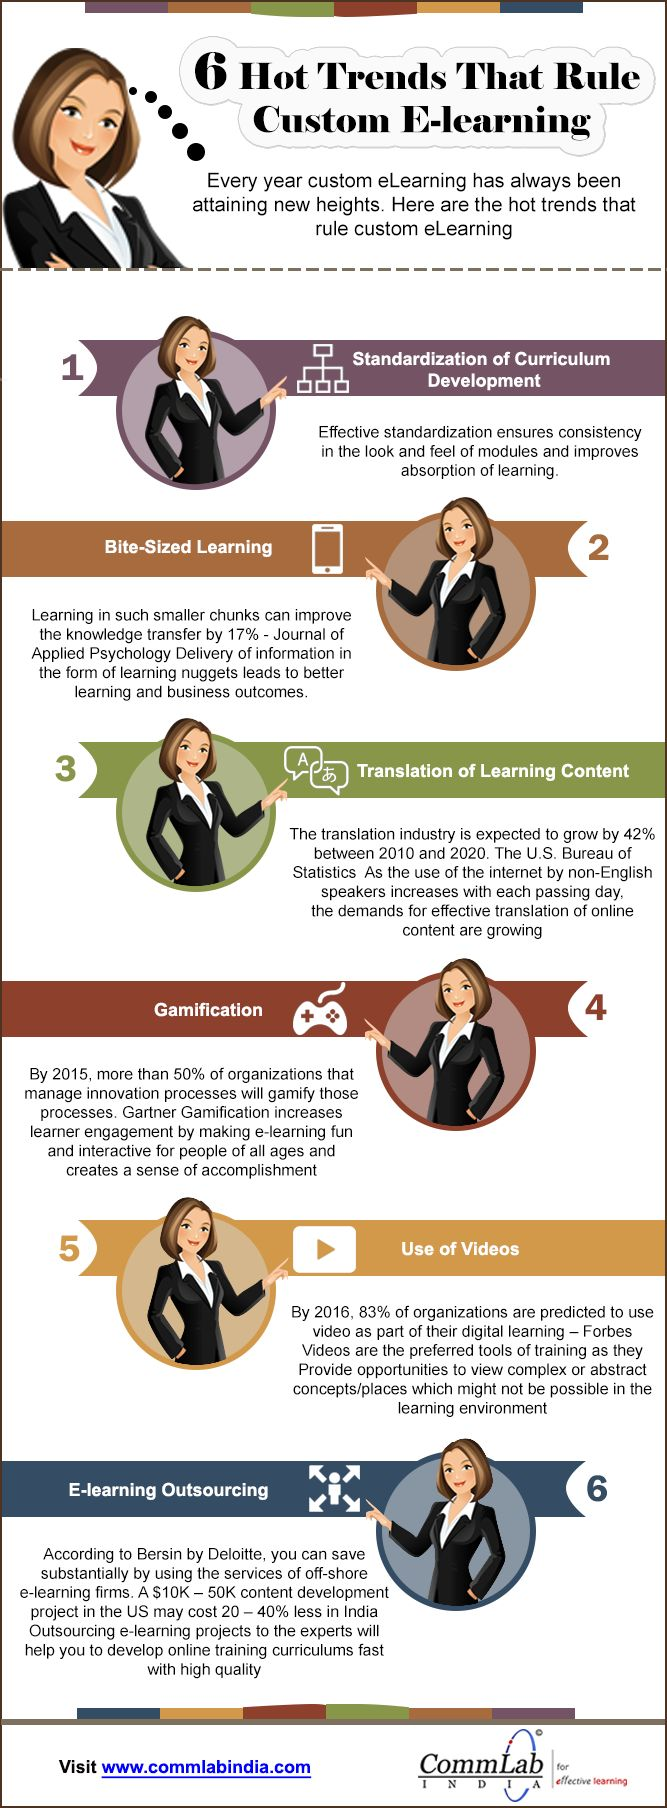 6 E-learning Trends Transforming the Corporate Training World [Infographic]